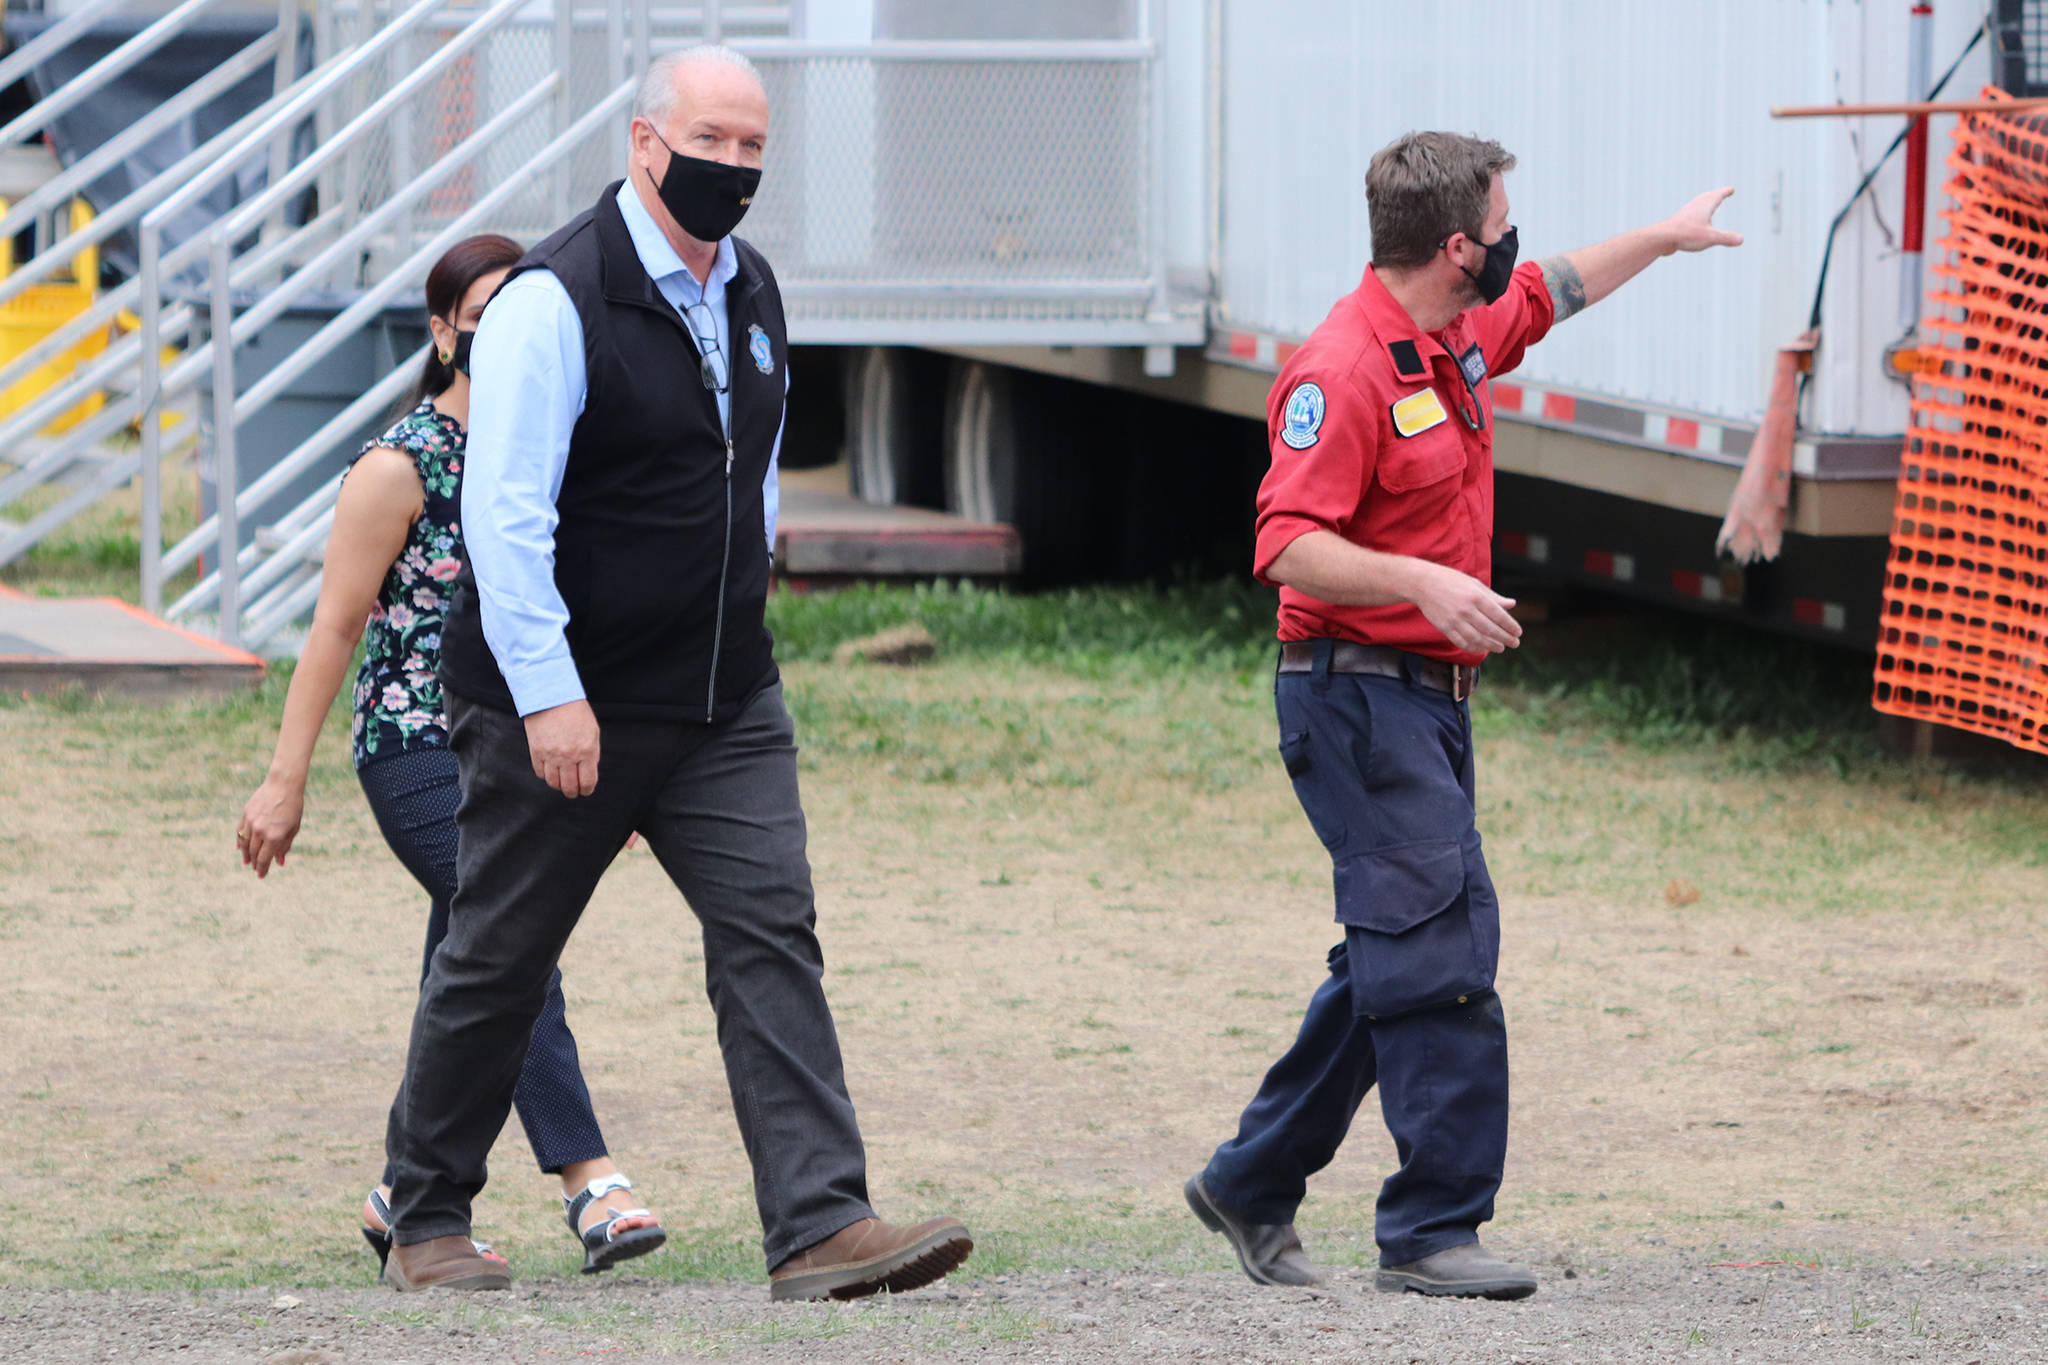 Premier John Horgan tours the BC Wildfire Service camp set up in Vernon Thursday, Aug. 26, where firefighters from all over are stationed while battling the White Rock Lake blaze. (Jennifer Smith - Morning Star)